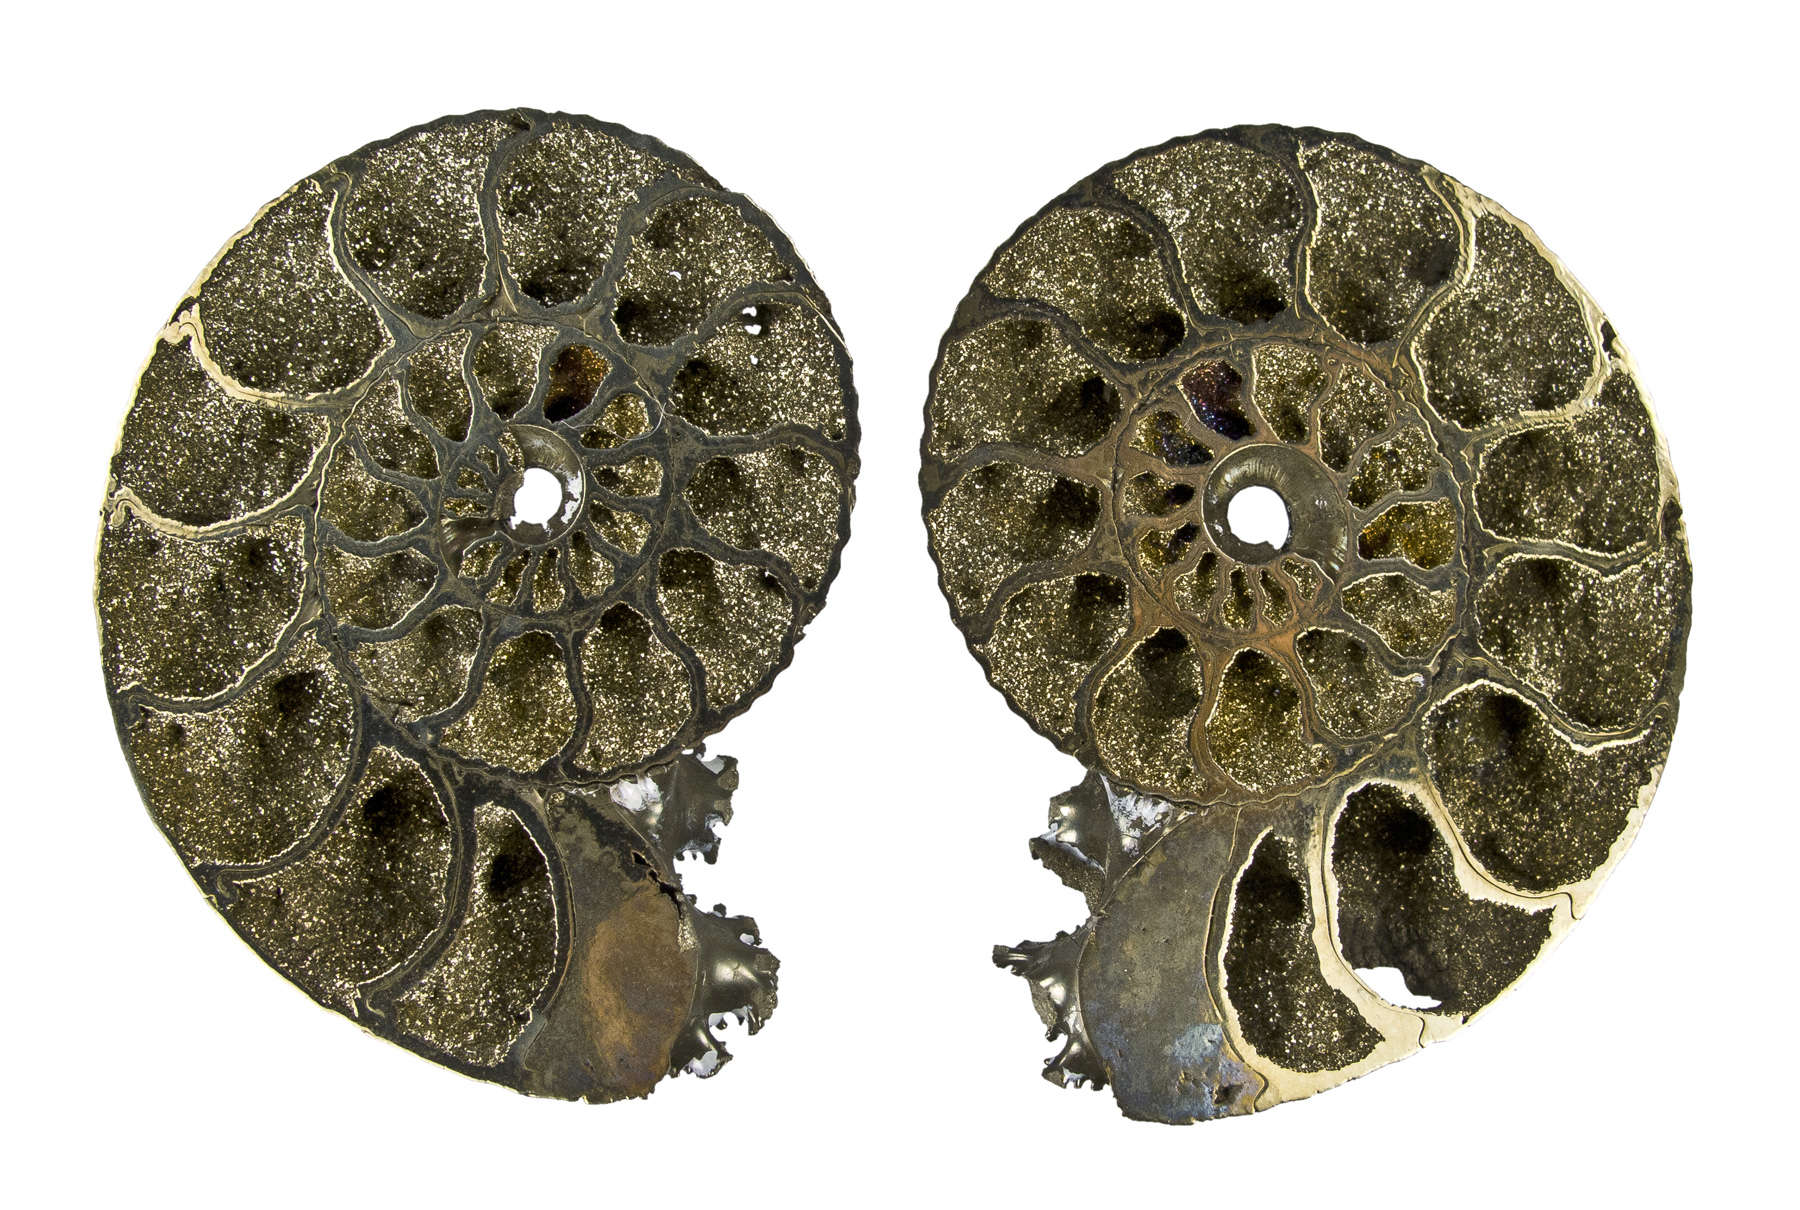 This famous fossil deposit 300 million year old Ammonites Volga River